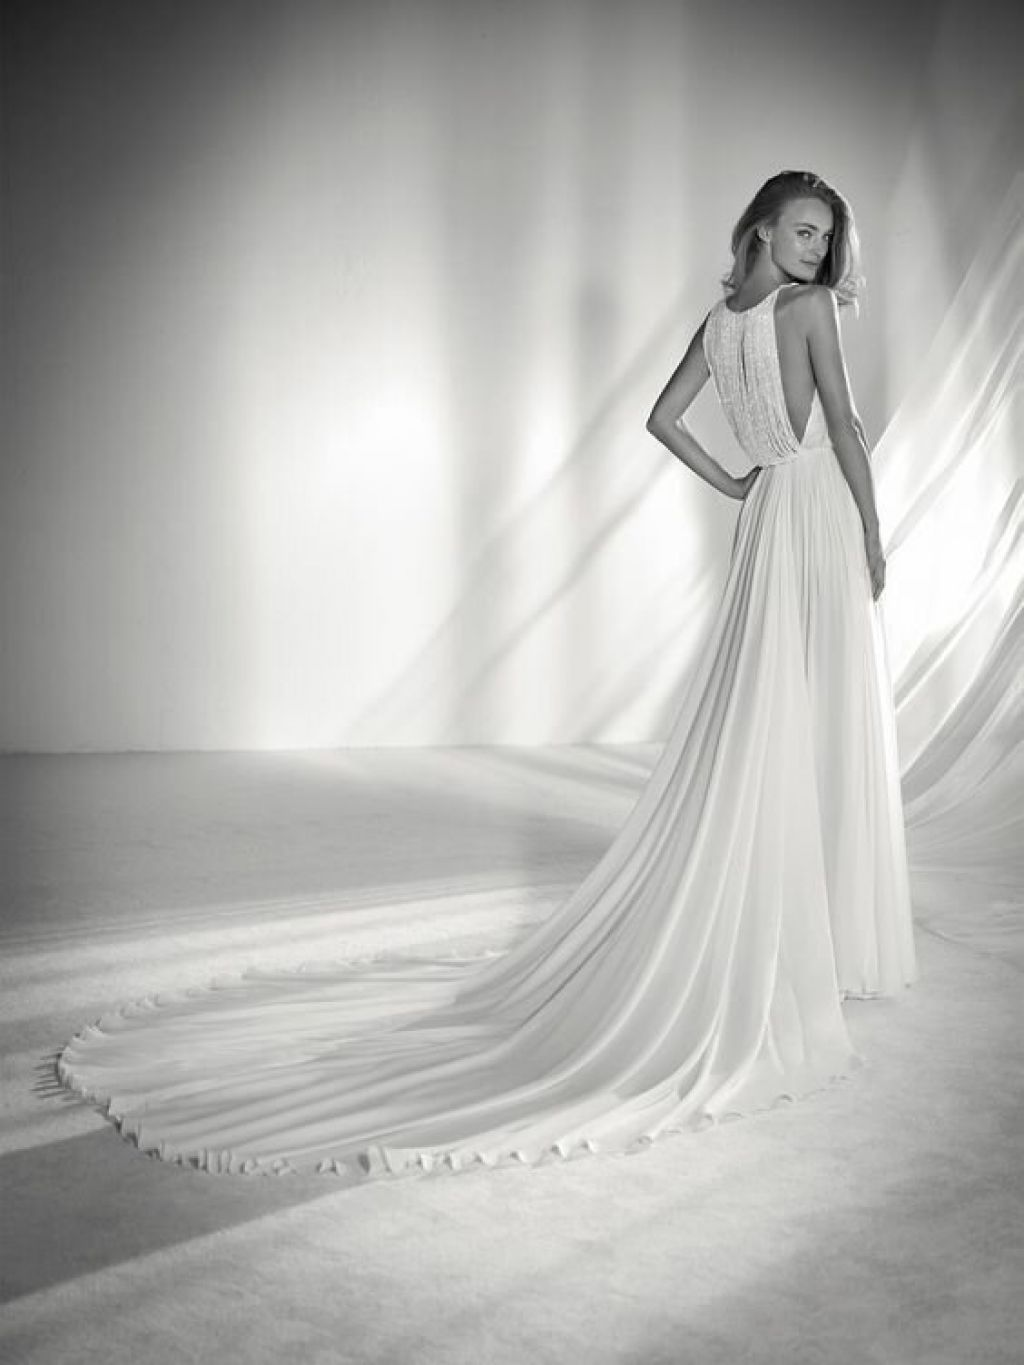 Ultra-glam soft A-line wedding dress with flowy skirt and beaded fringe bodice by Pronovias